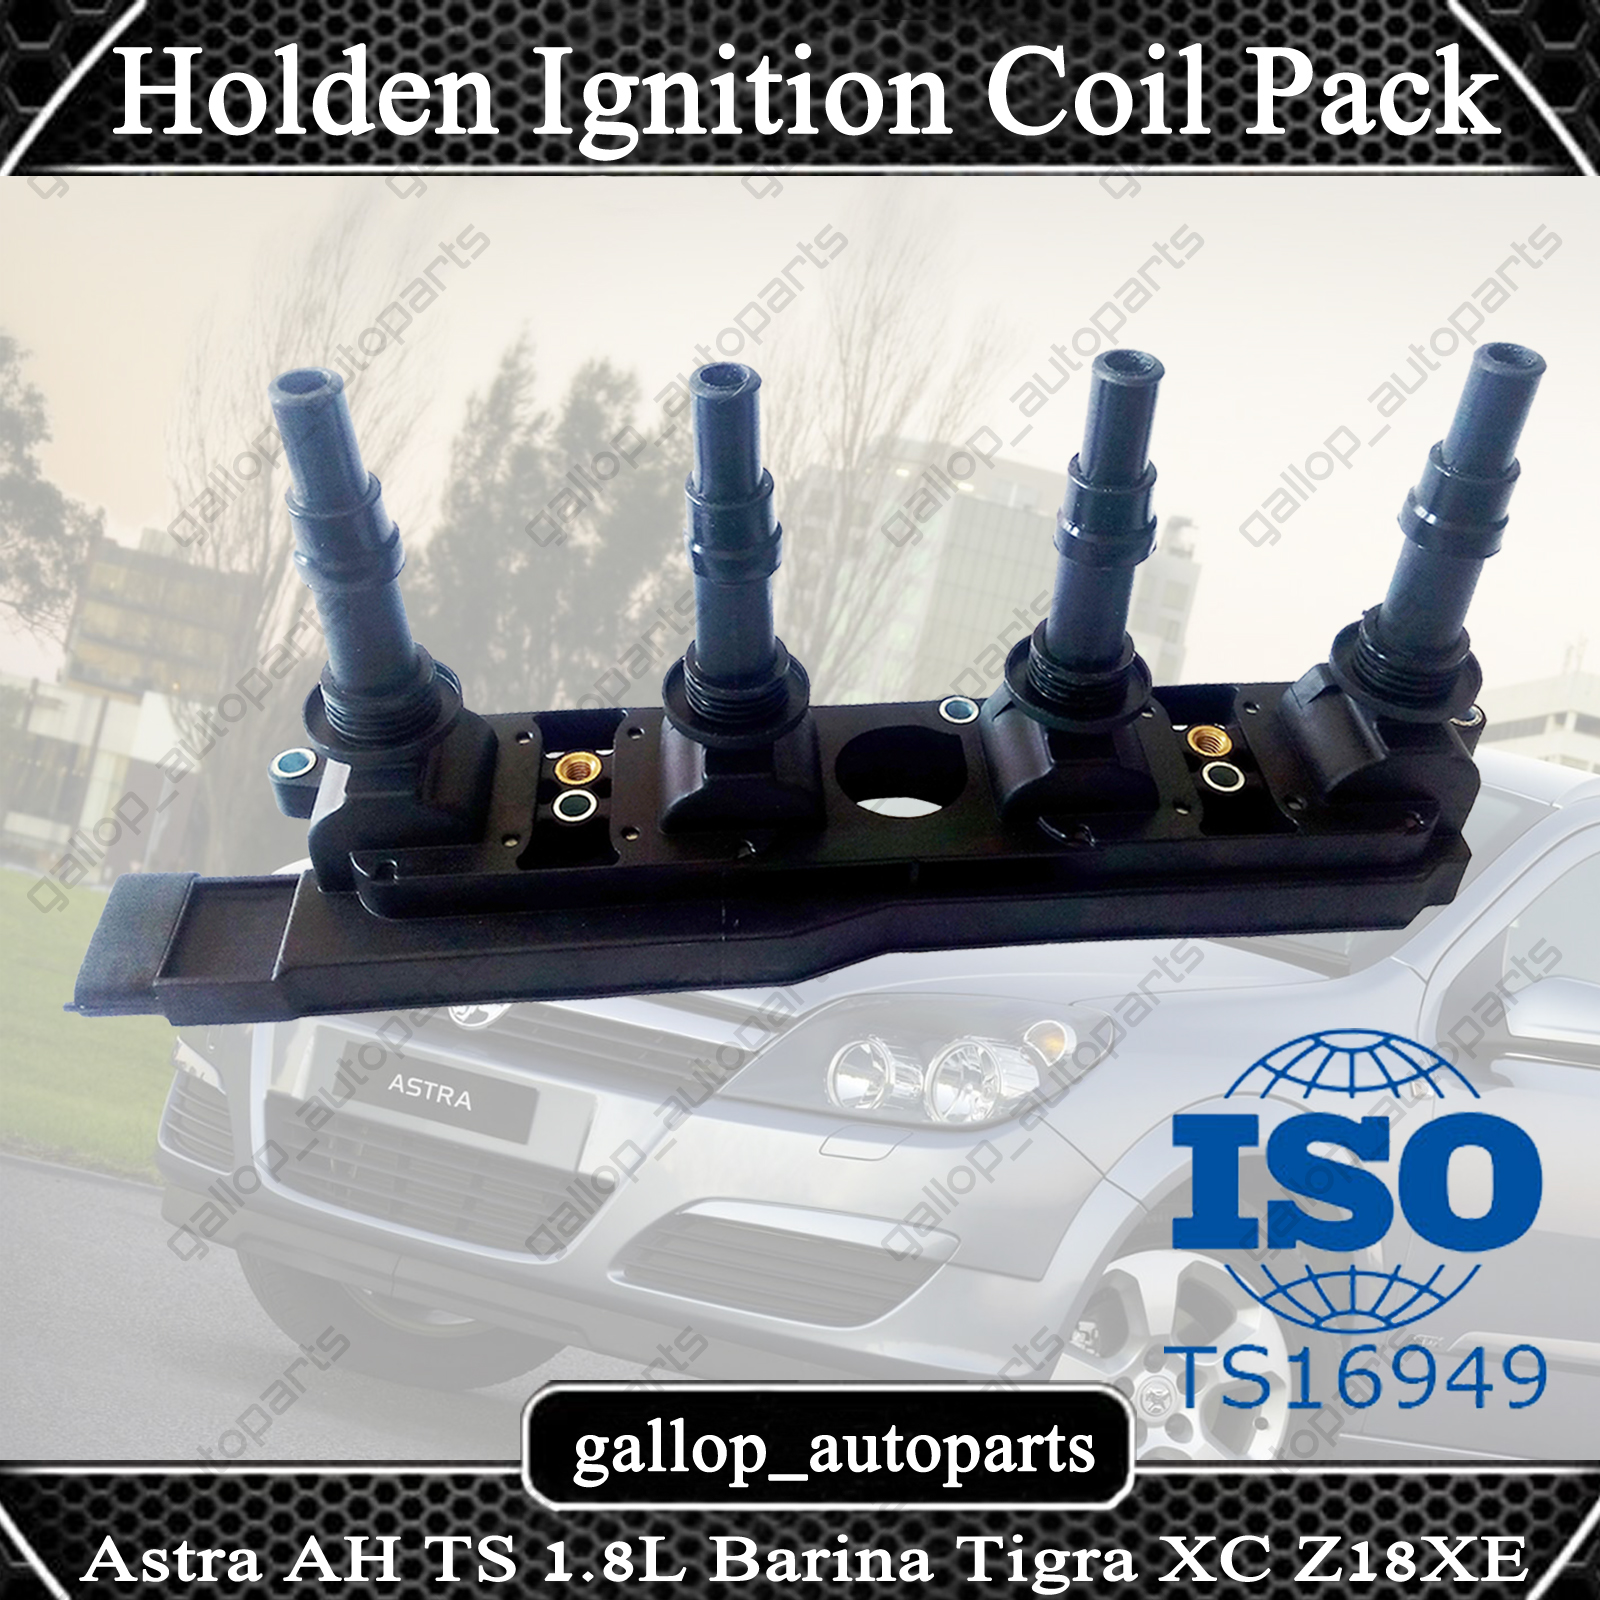 ignition coil pack for holden astra ah ts barina combo. Black Bedroom Furniture Sets. Home Design Ideas